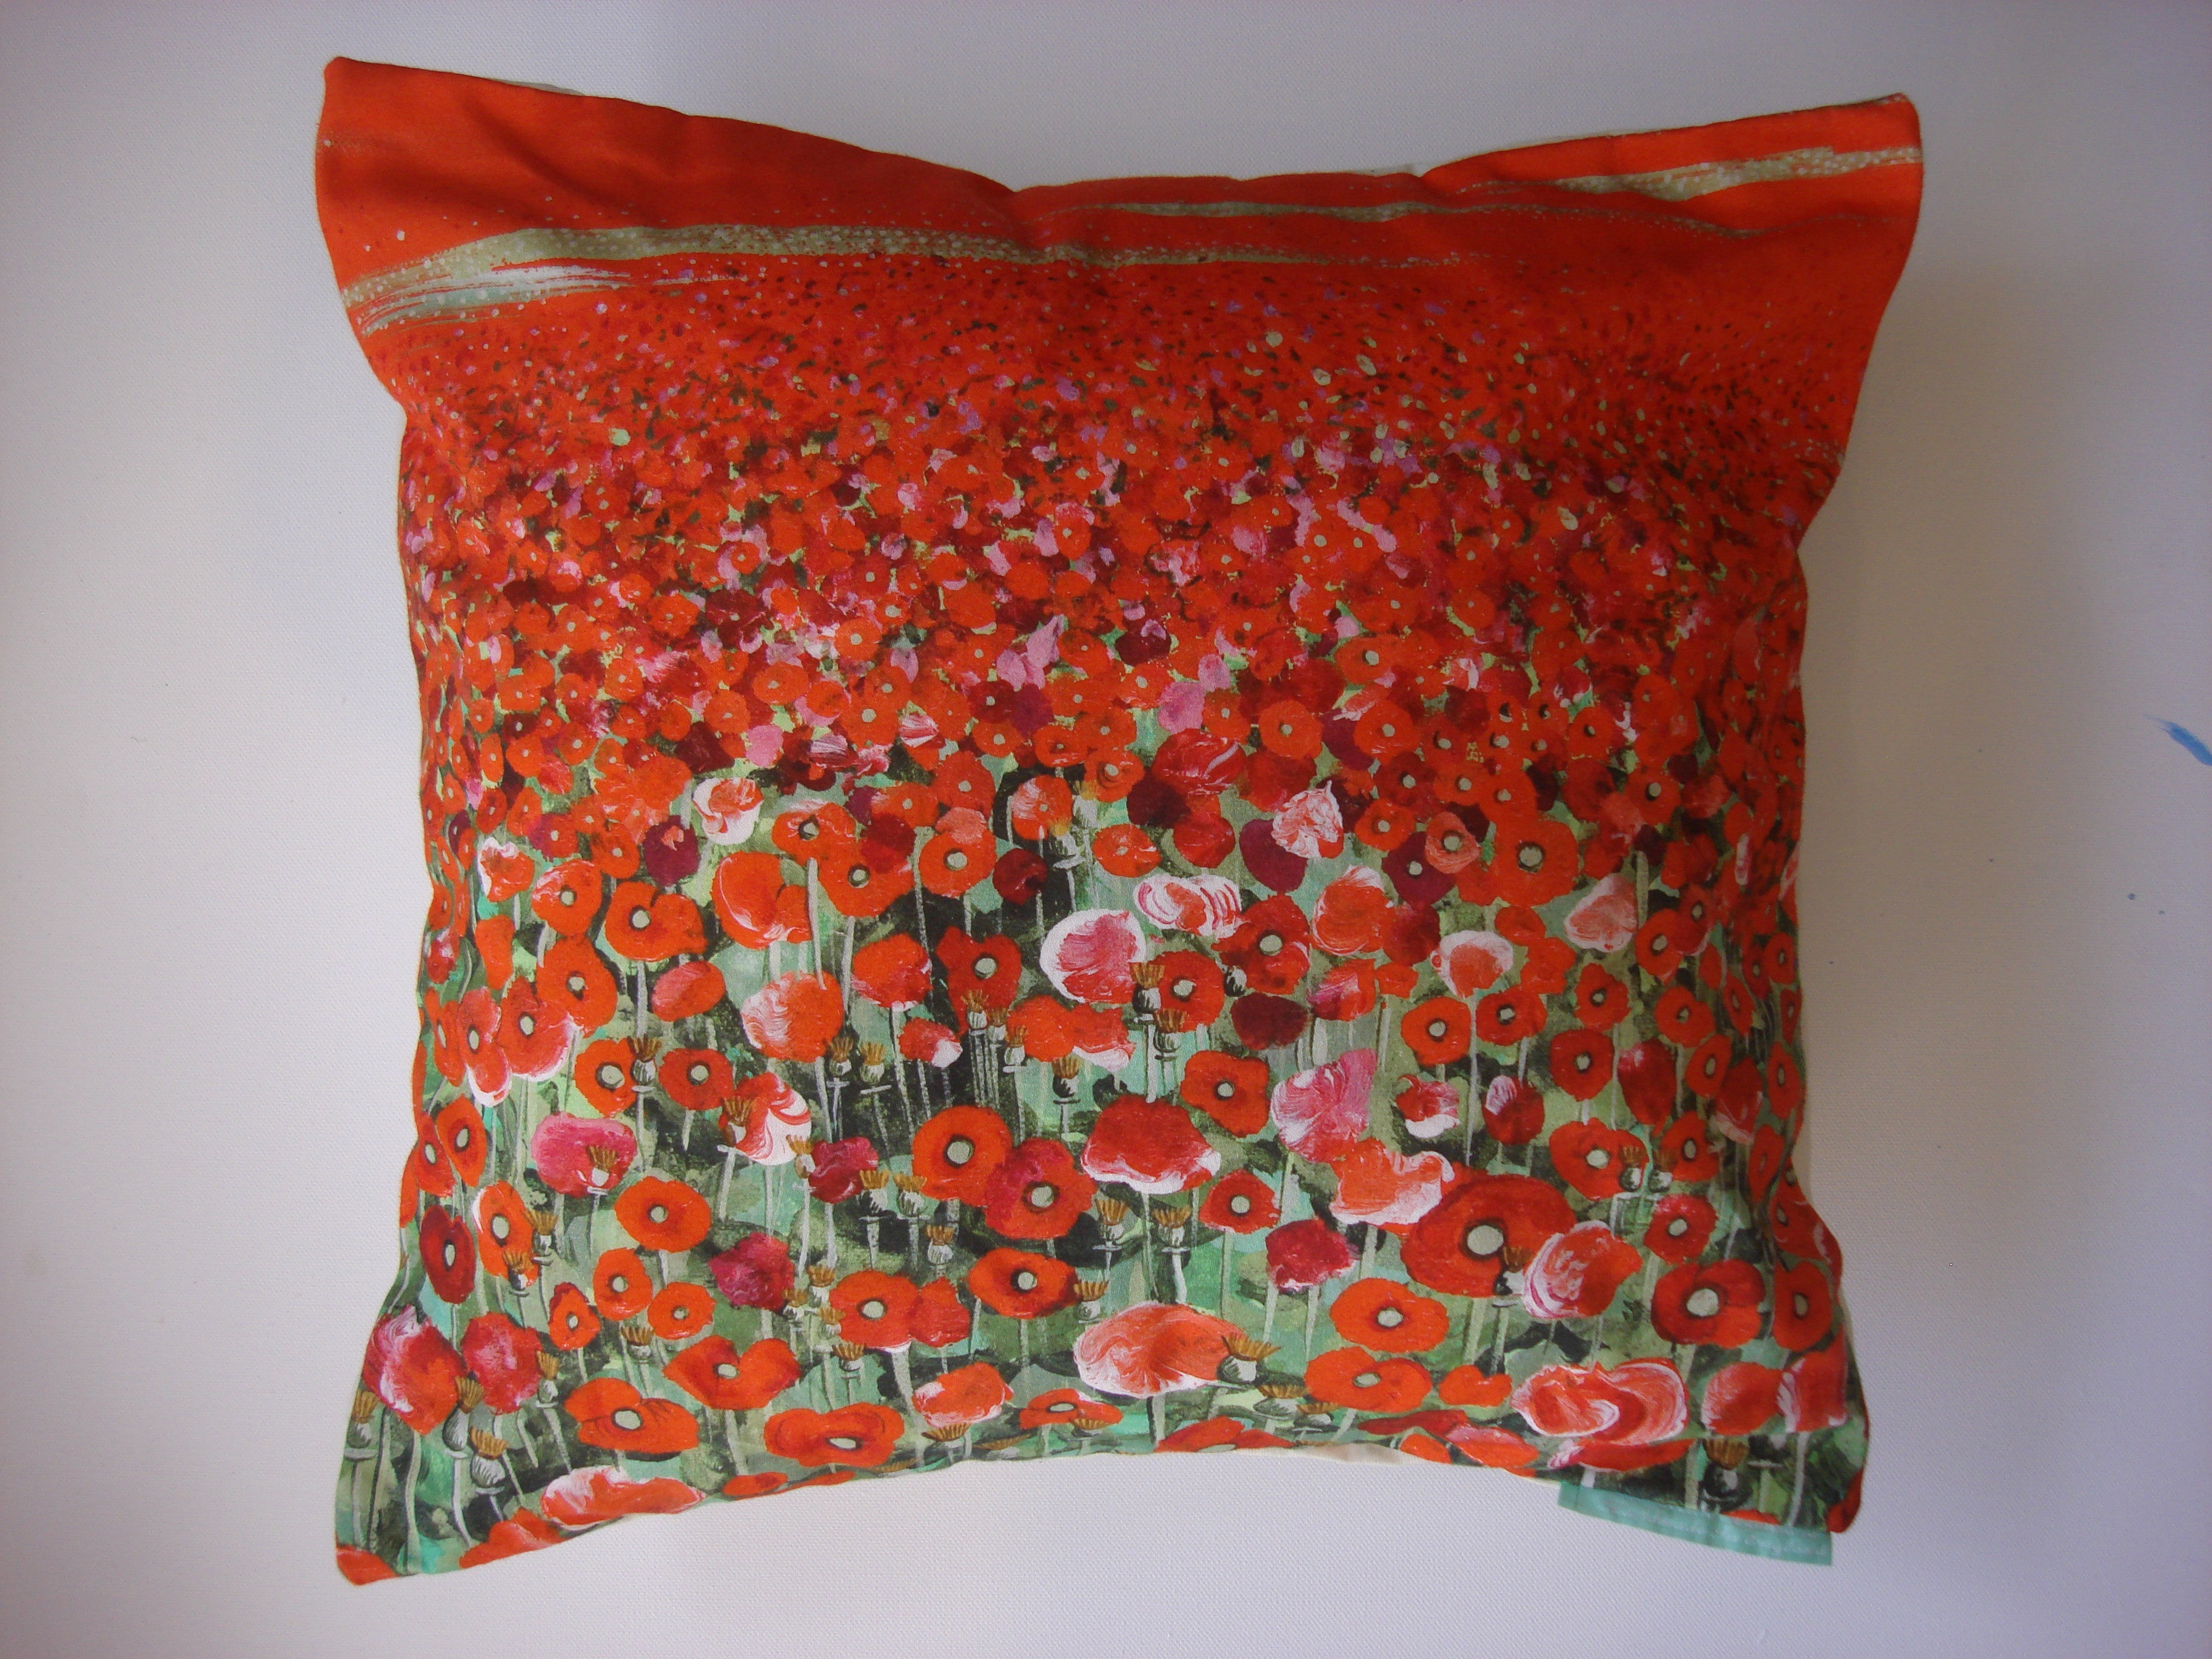 Luxury Cushion Cover - Poppy Fields Print  Smart Deco Homeware Lighting and Art by Jacqueline hammond